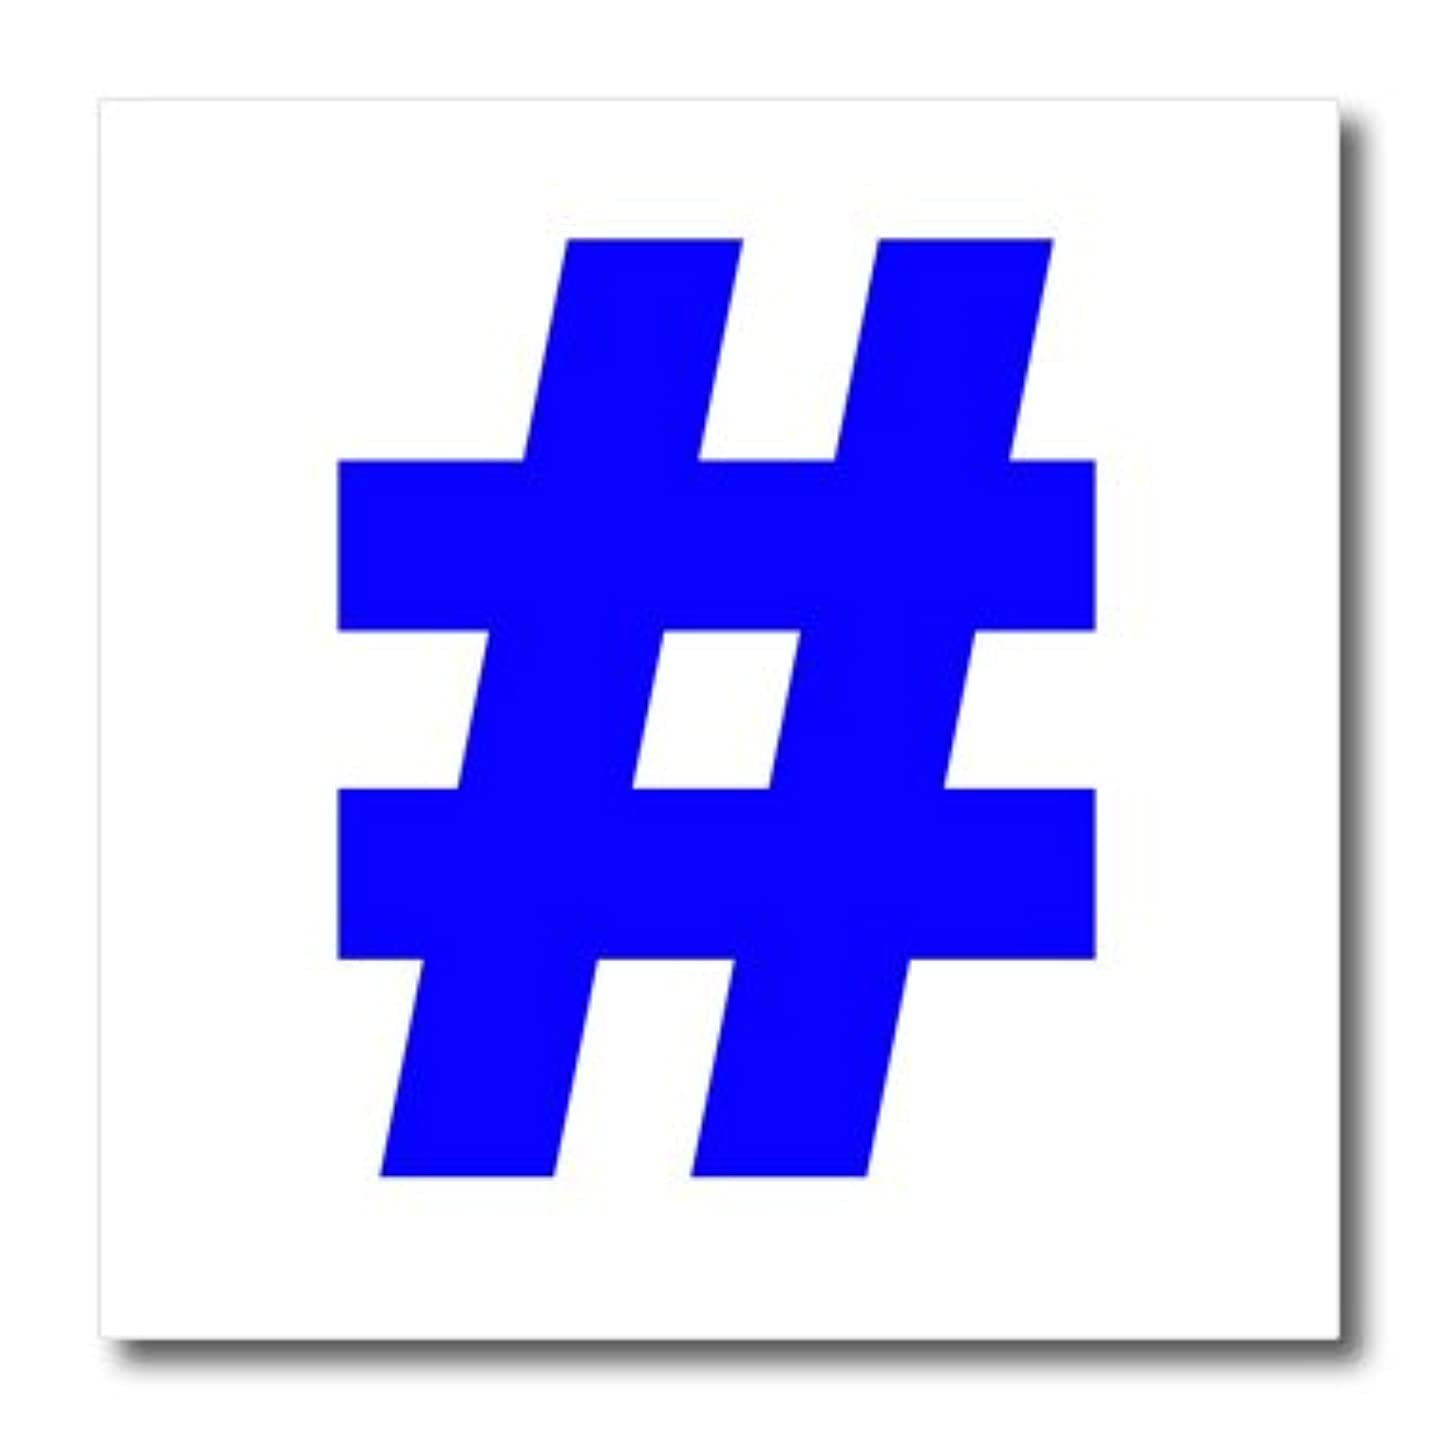 3dRose ht_107342_2 Blue Hashtag,-Iron on Heat Transfer for Material, 6 by 6-Inch, White